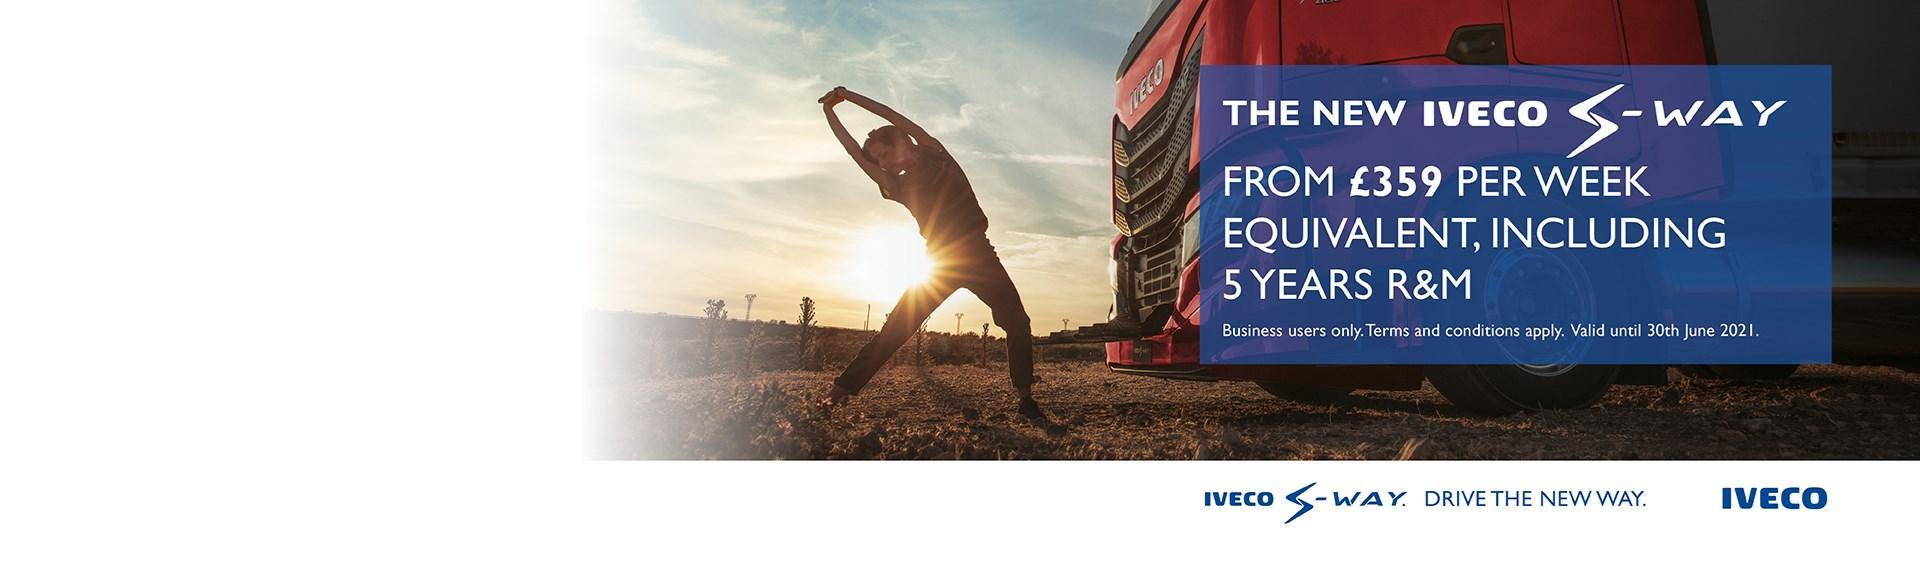 The new Iveco S-Way from £365 per week